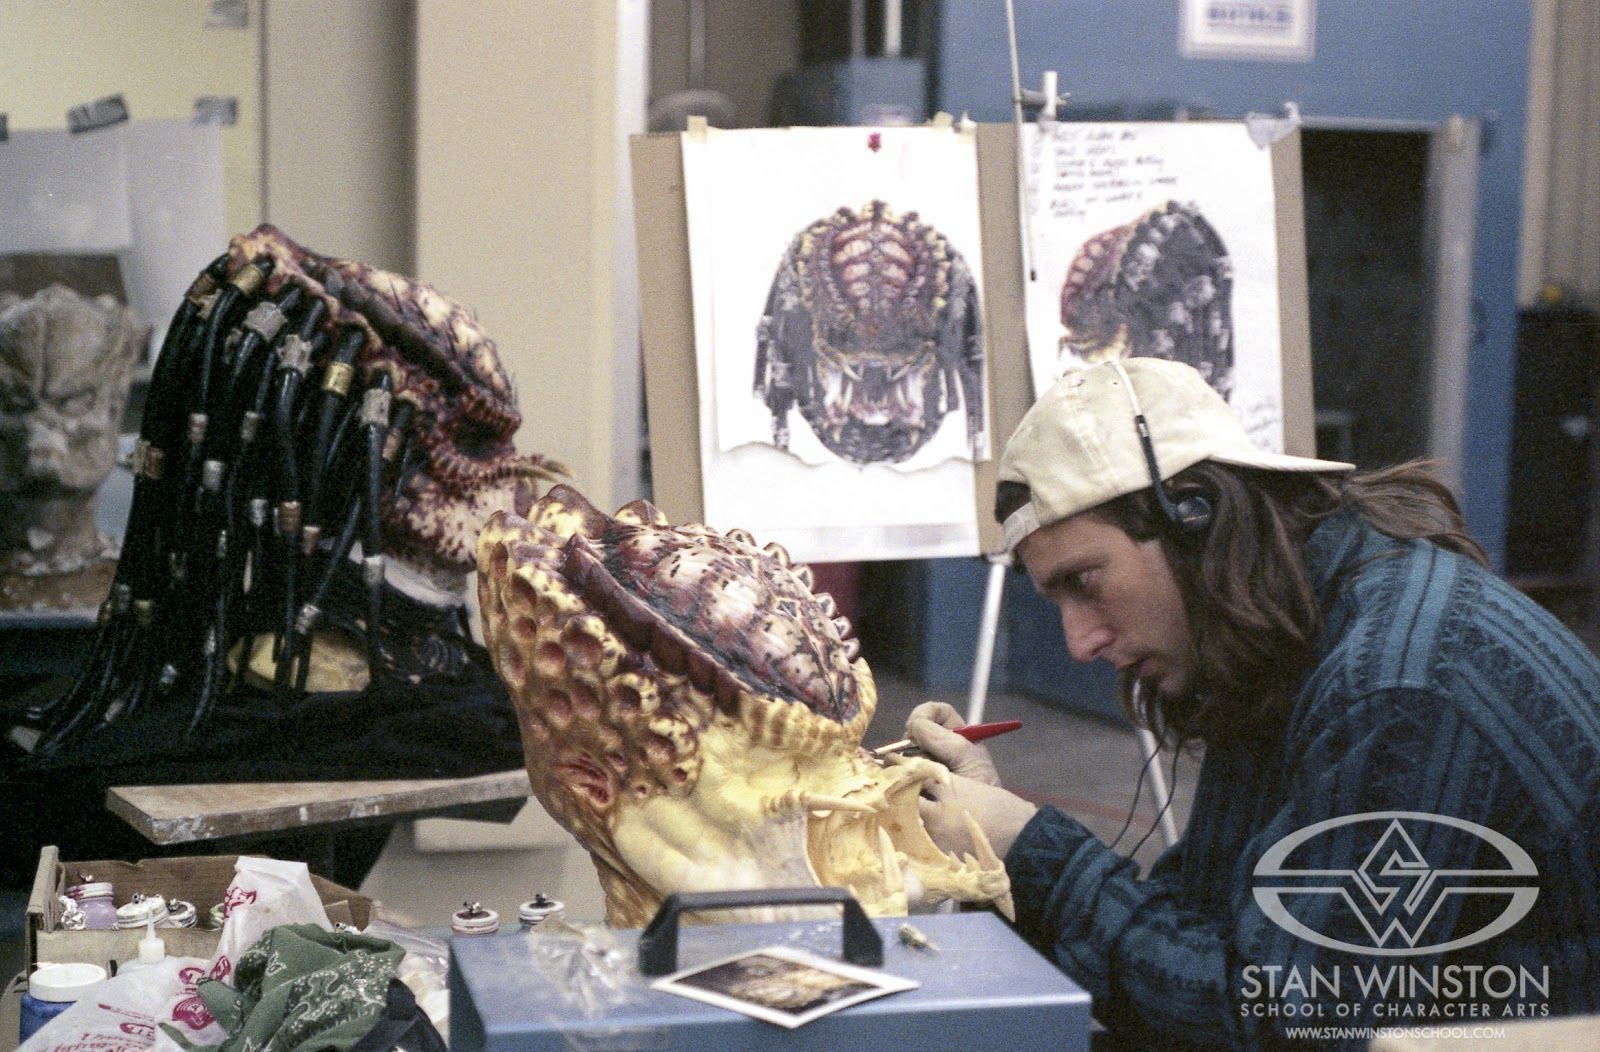 stan winston school instagram